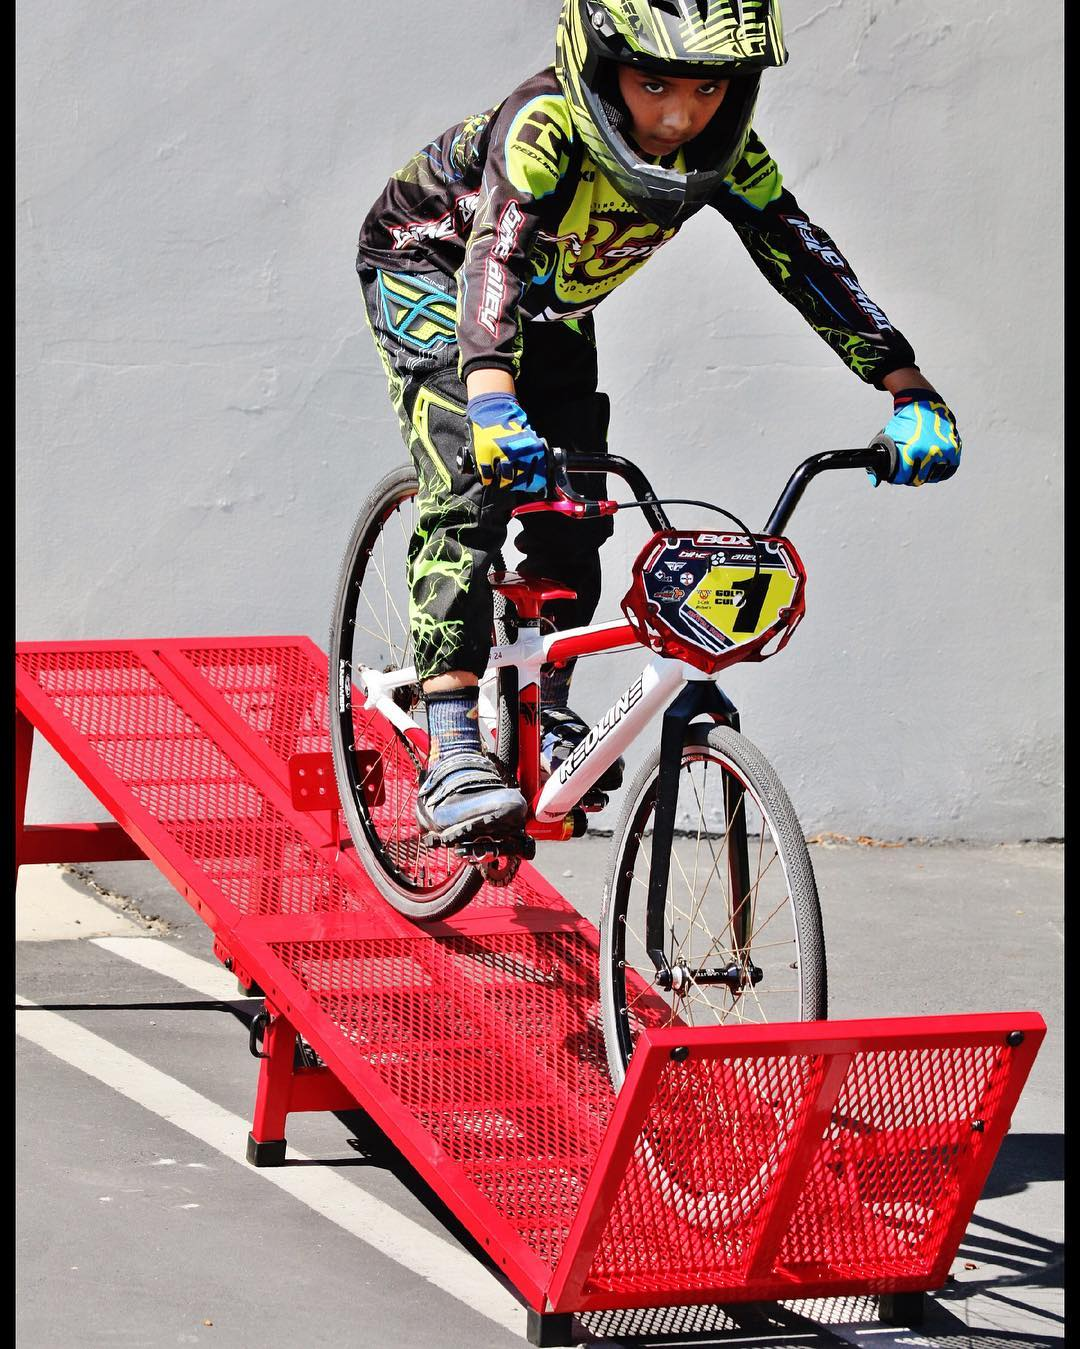 FreshStart BMX Starting Gate